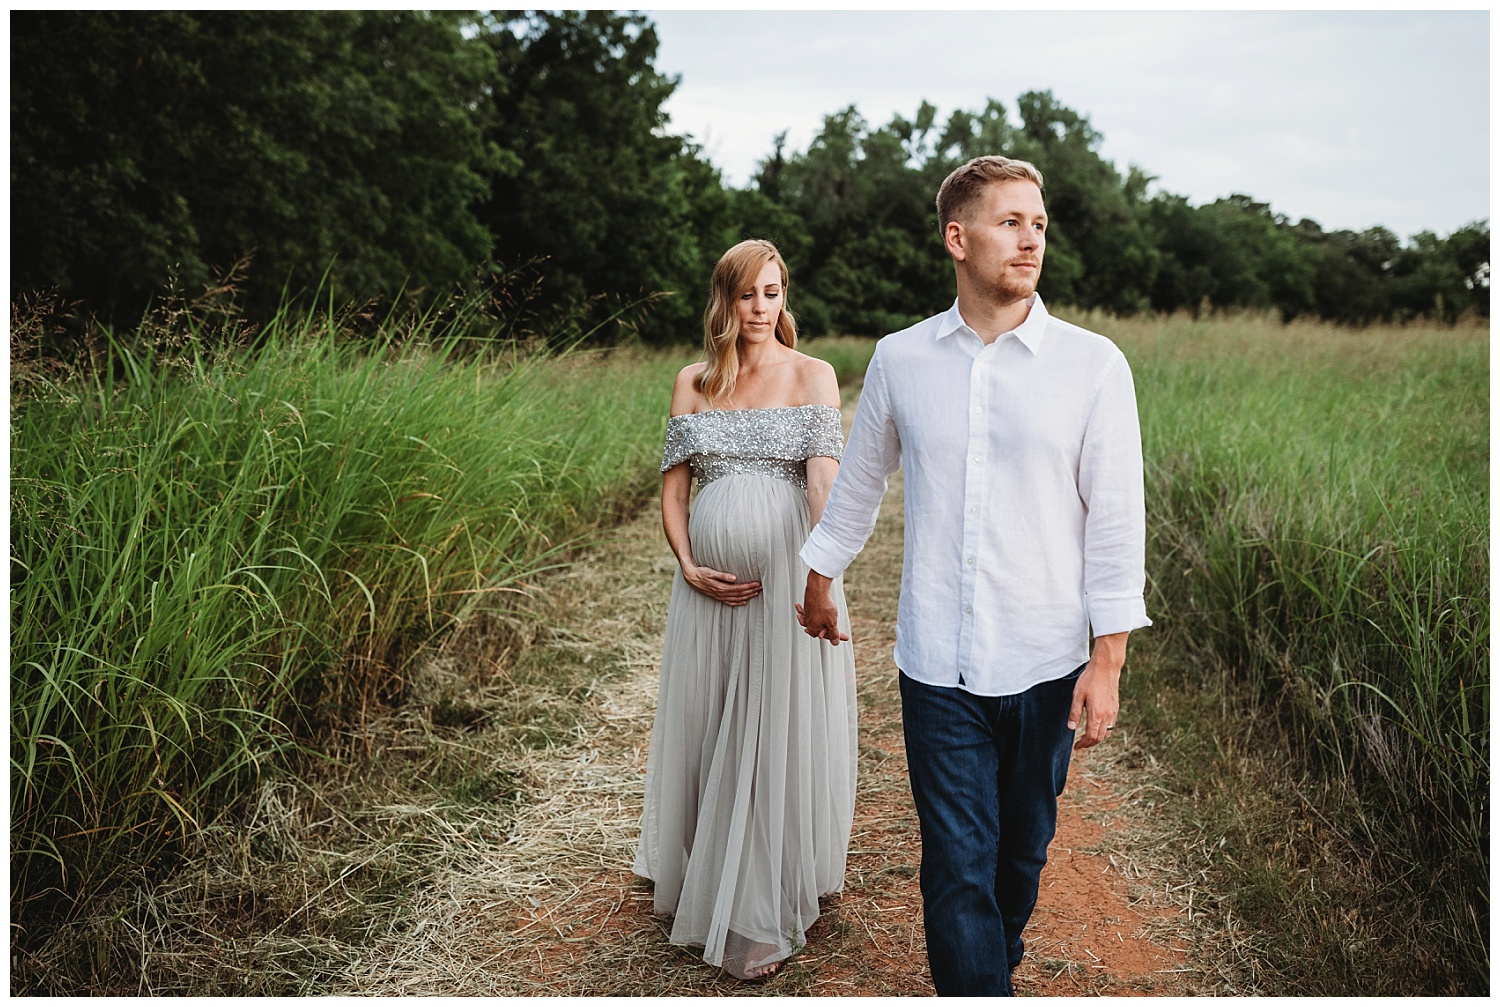 Maternity Photons in a field at Martin Nature Park in Edmond, Oklahoma. Sweet Couple holding hands.